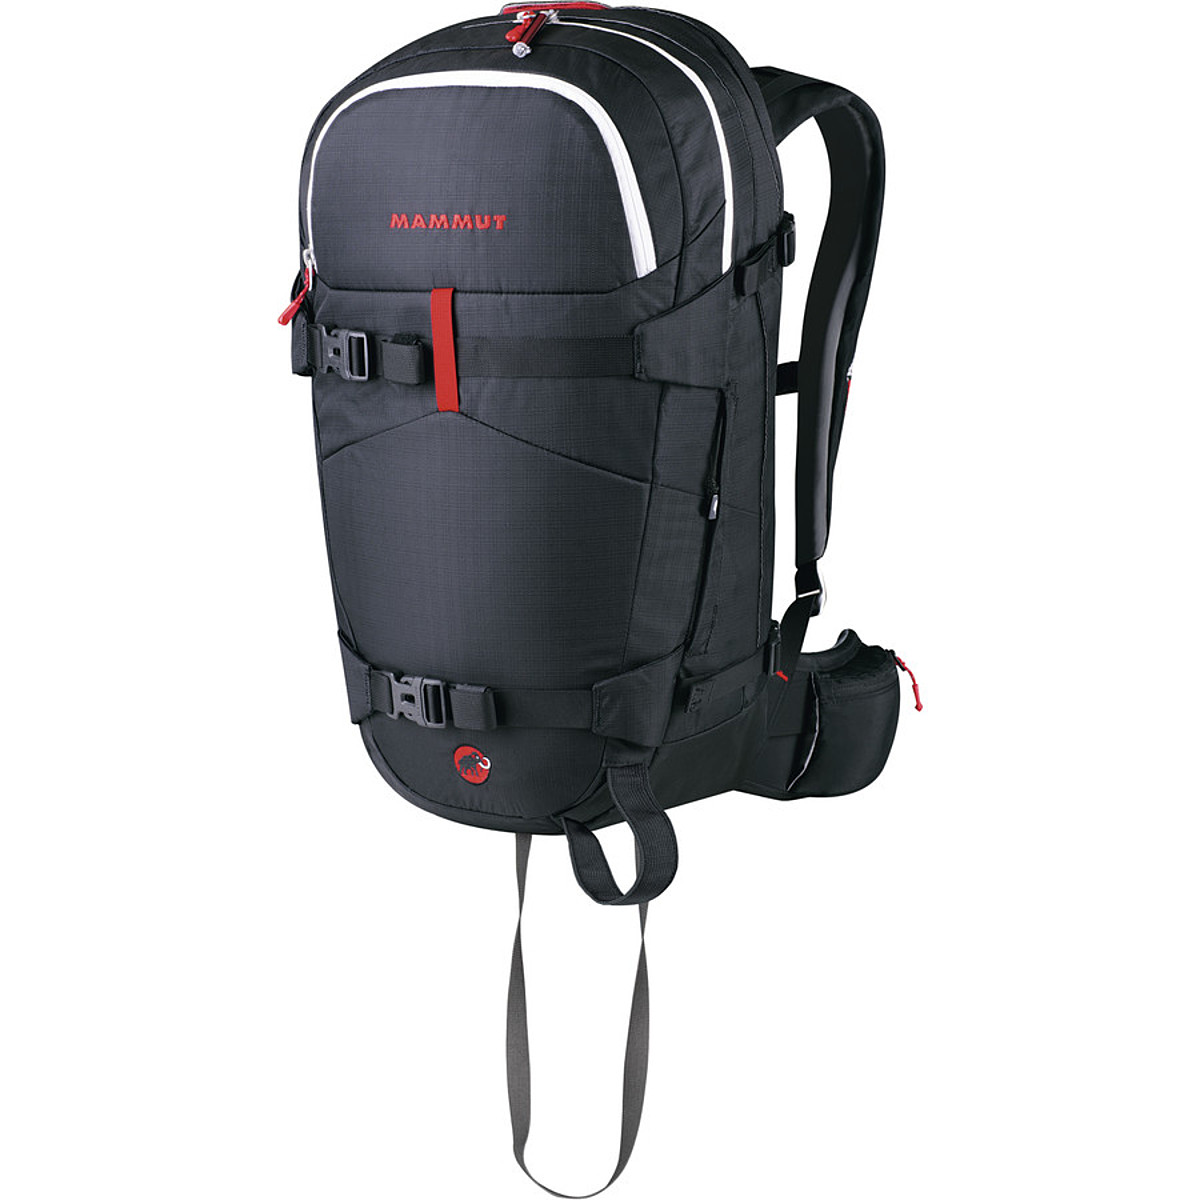 Mammut Ride R.A.S. Avalanche Airbag Backpack